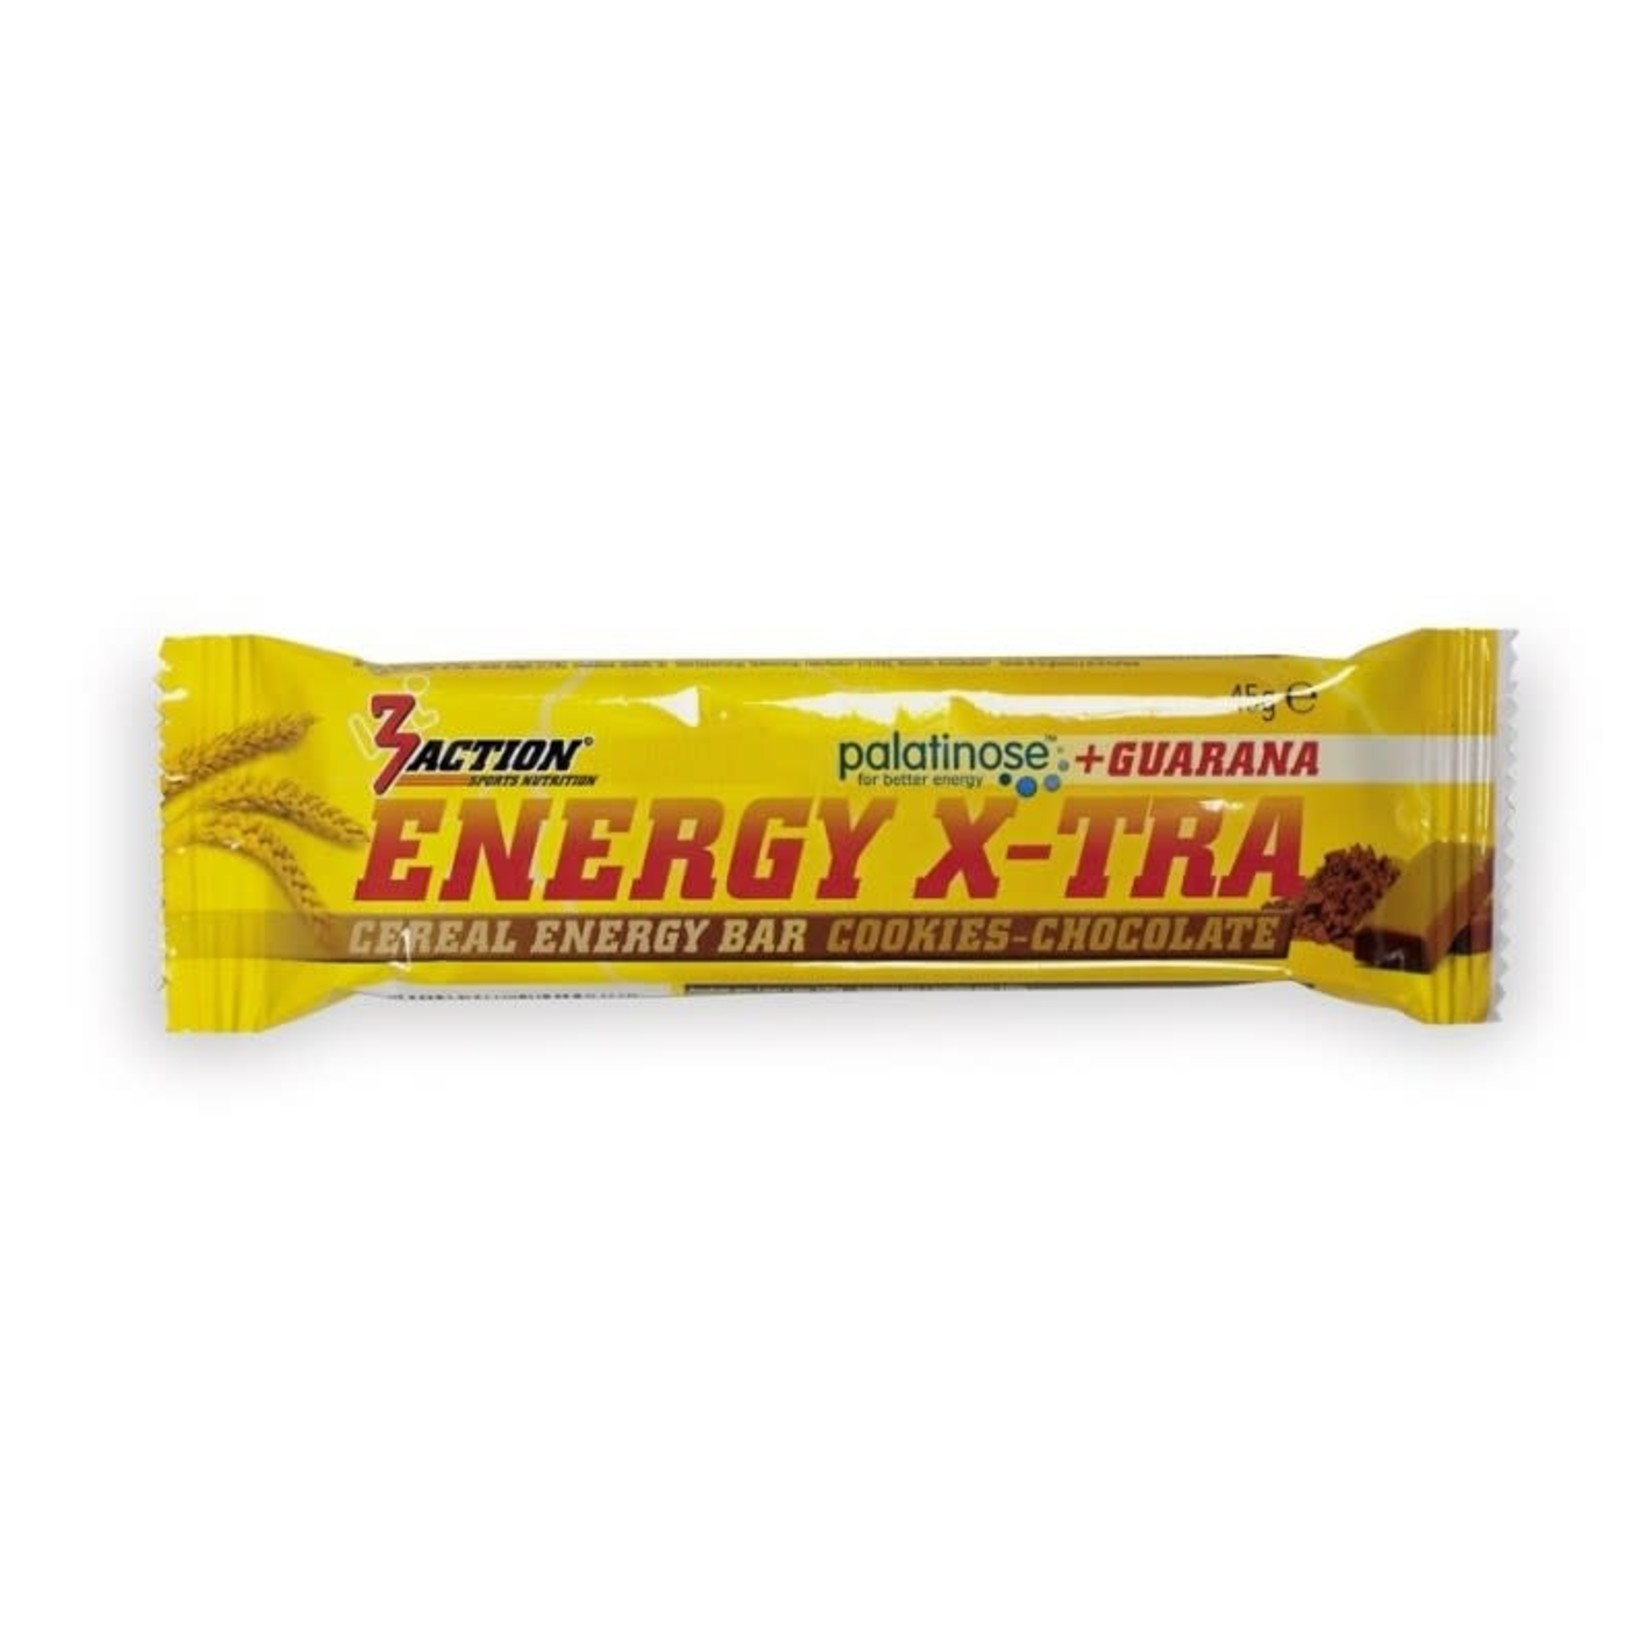 3Action 'Energy X-tra bar (cookies-chocolate)'